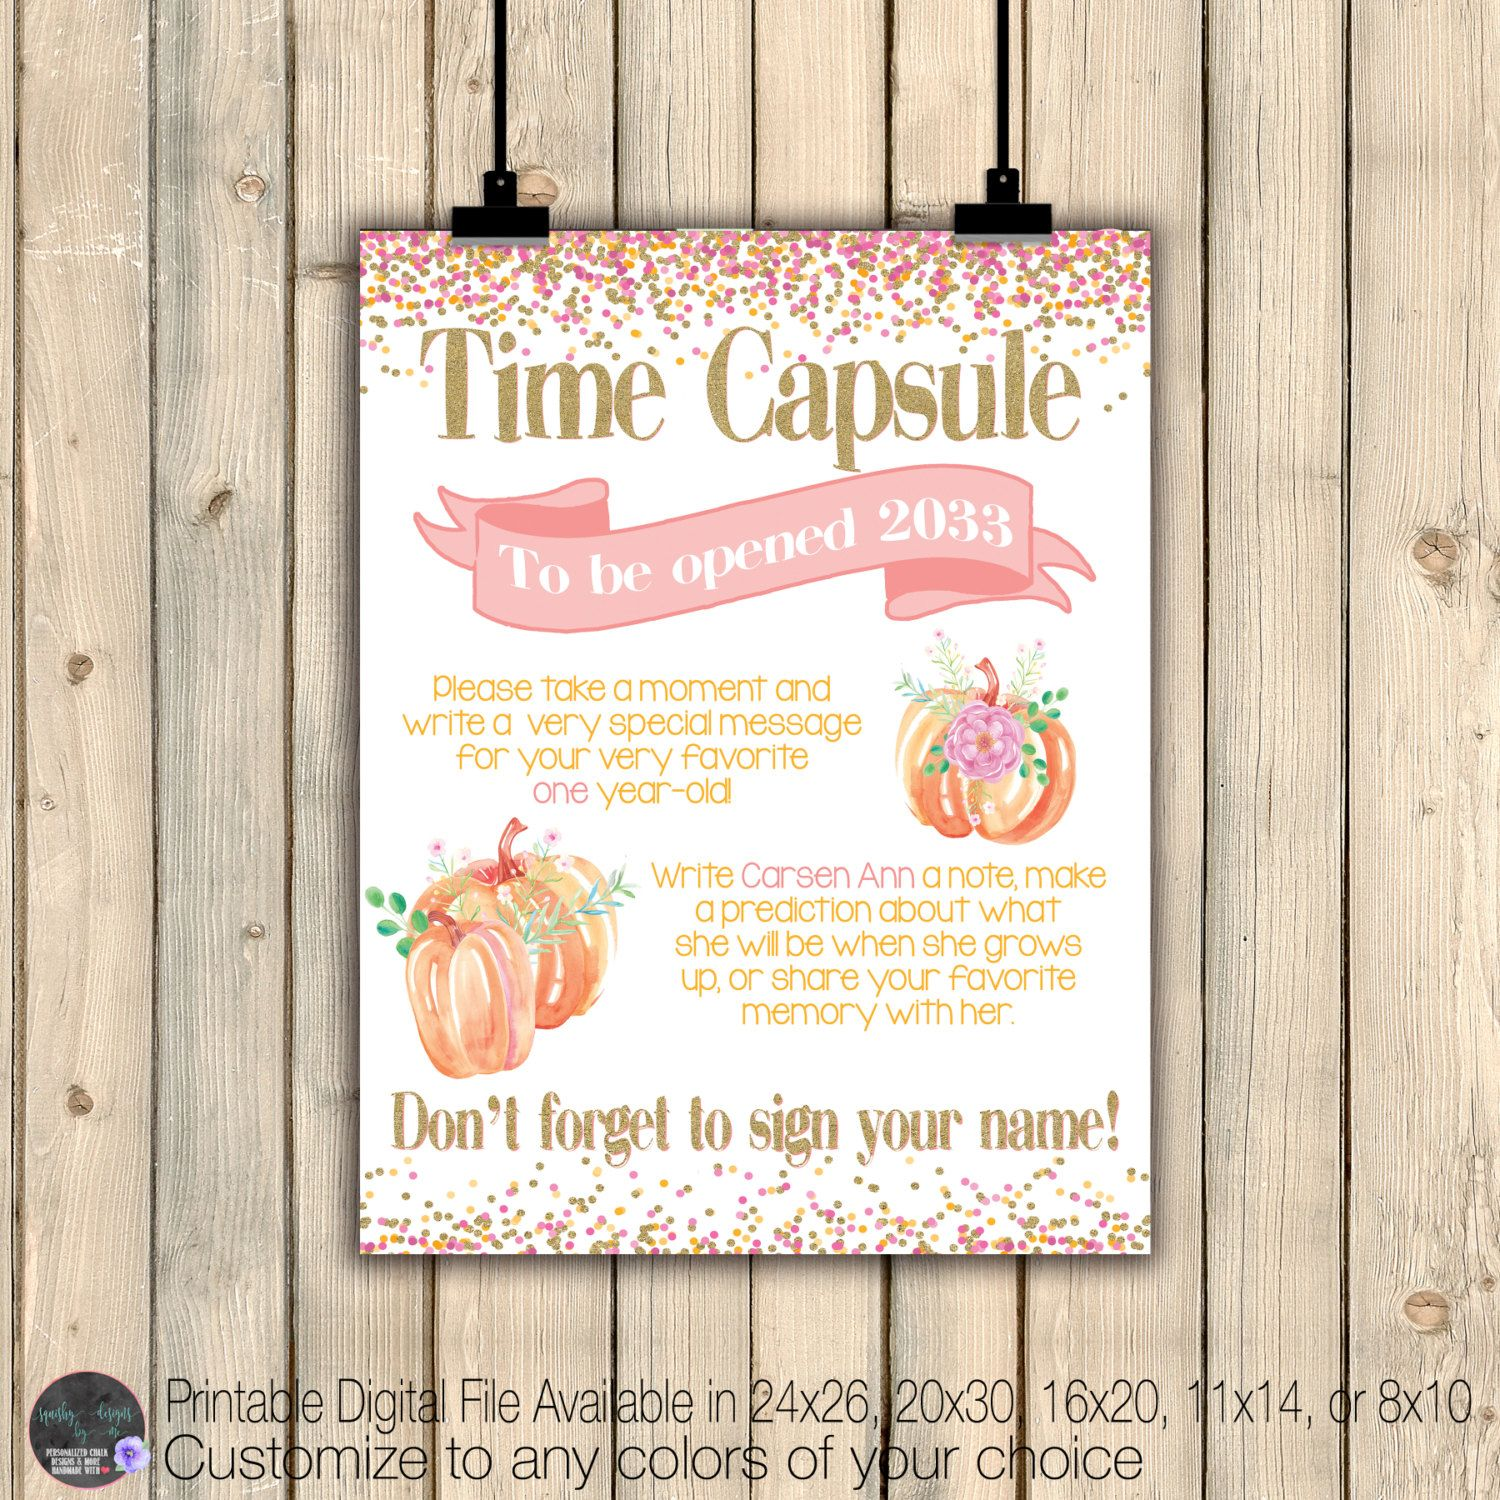 Fancy Watercolor Pumpkins Birthday Time Capsule Instructions Sign Poster First 1st Birthday Keepsake Pumpkin Birthday Birthday Keepsakes Watercolor Pumpkins